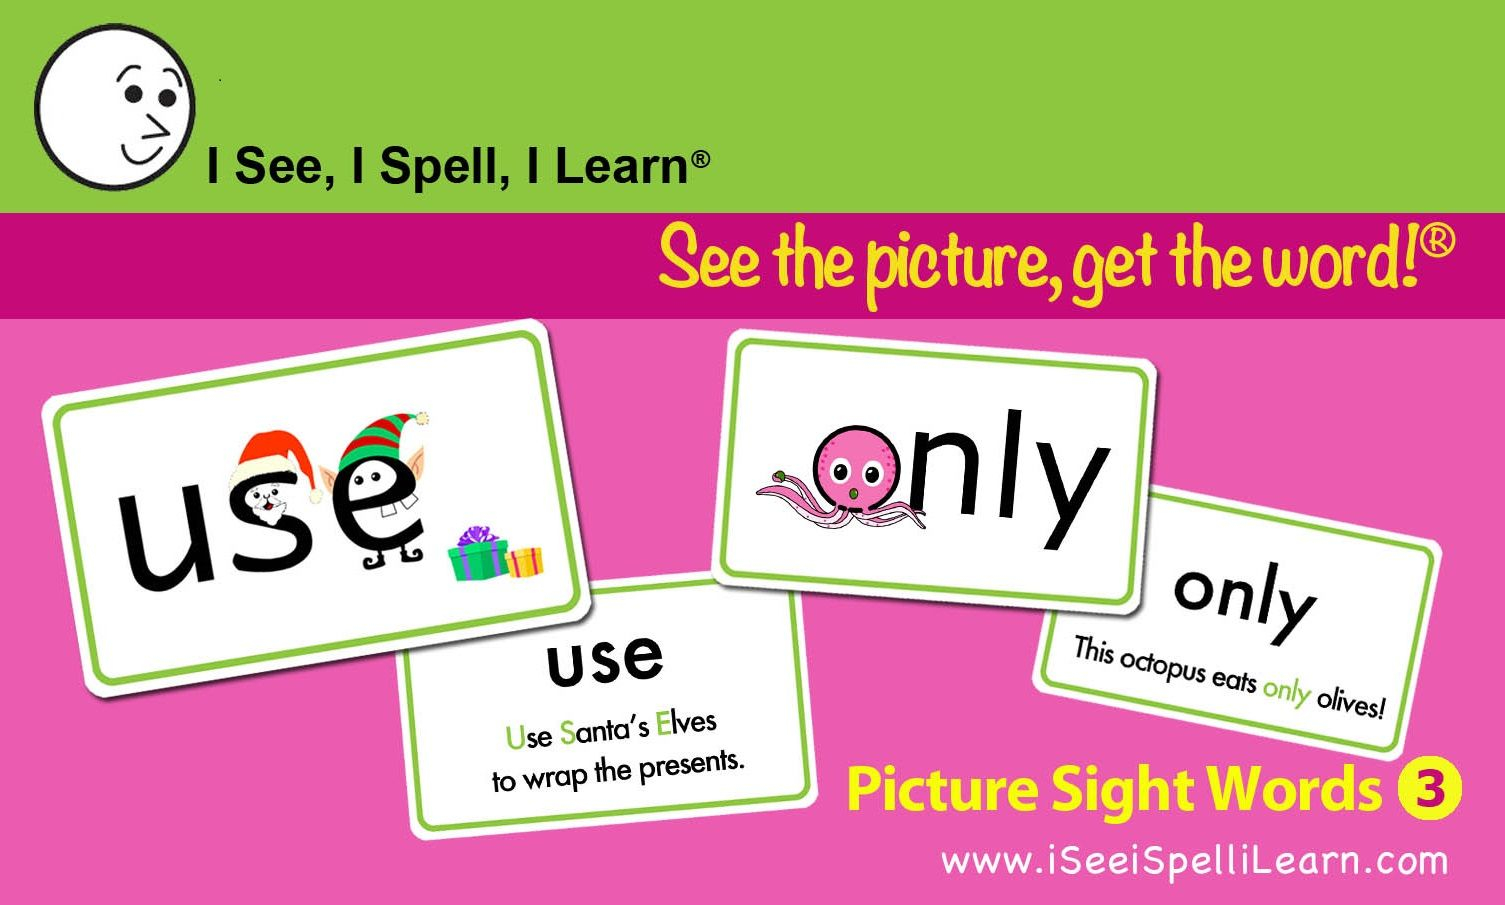 I See, I Spell, I Learn® - Teaching Materials For Dyslexia